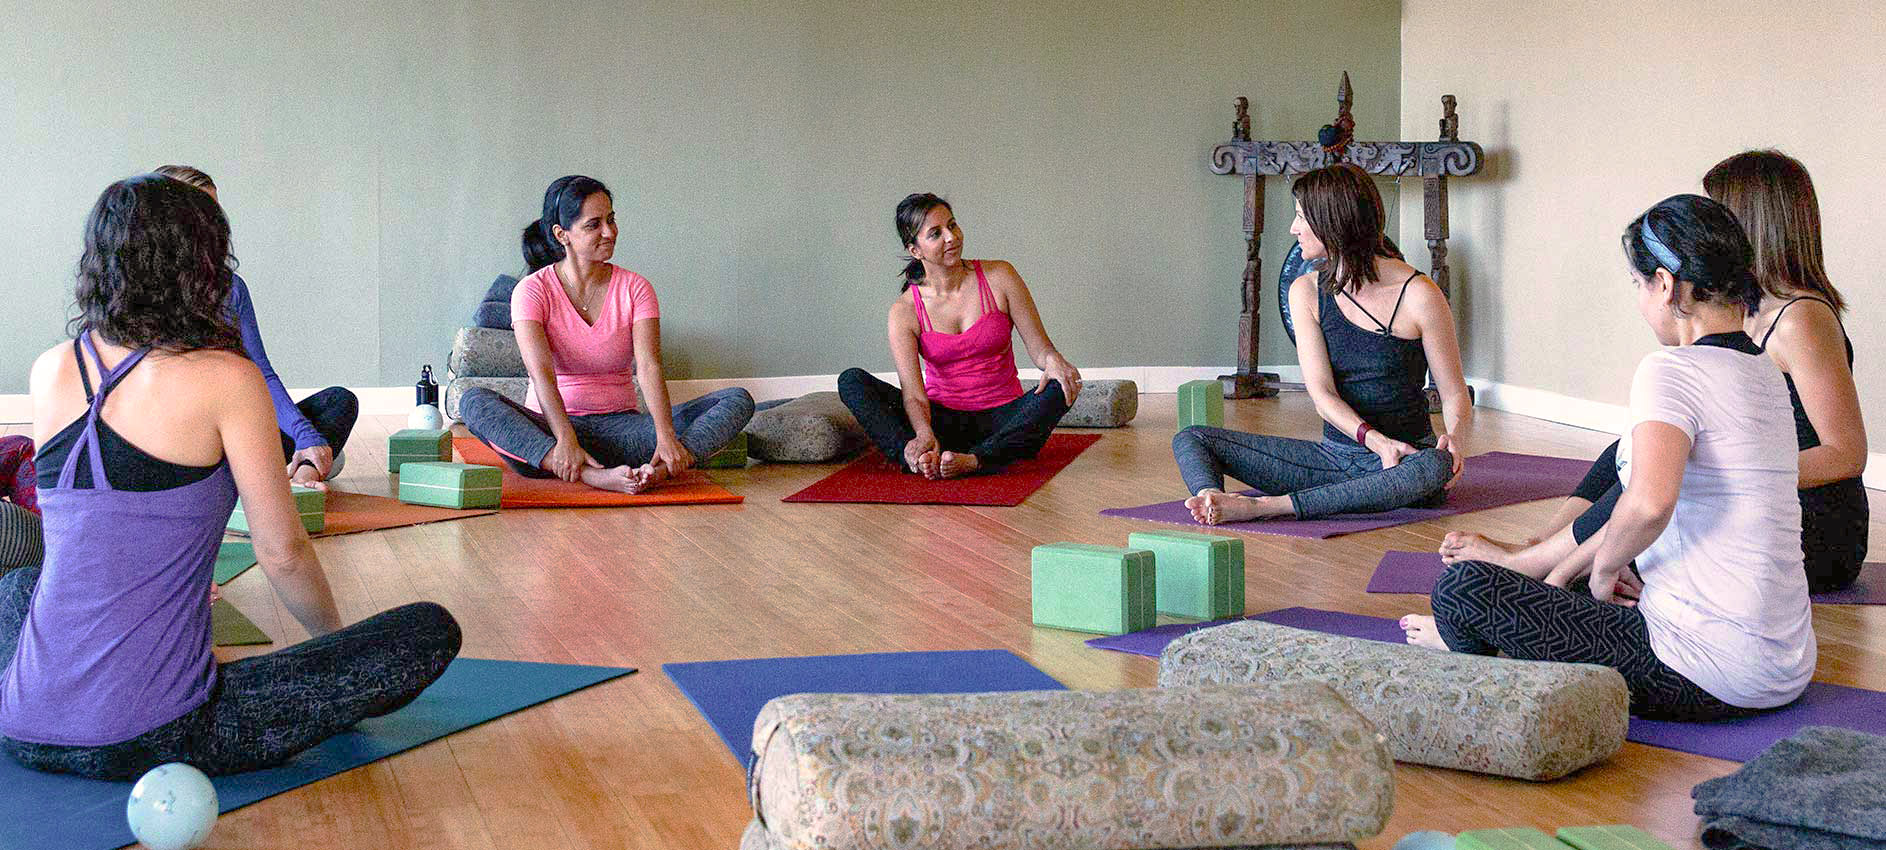 Weekly Yoga Fertility Class & Support Group in Los Angeles